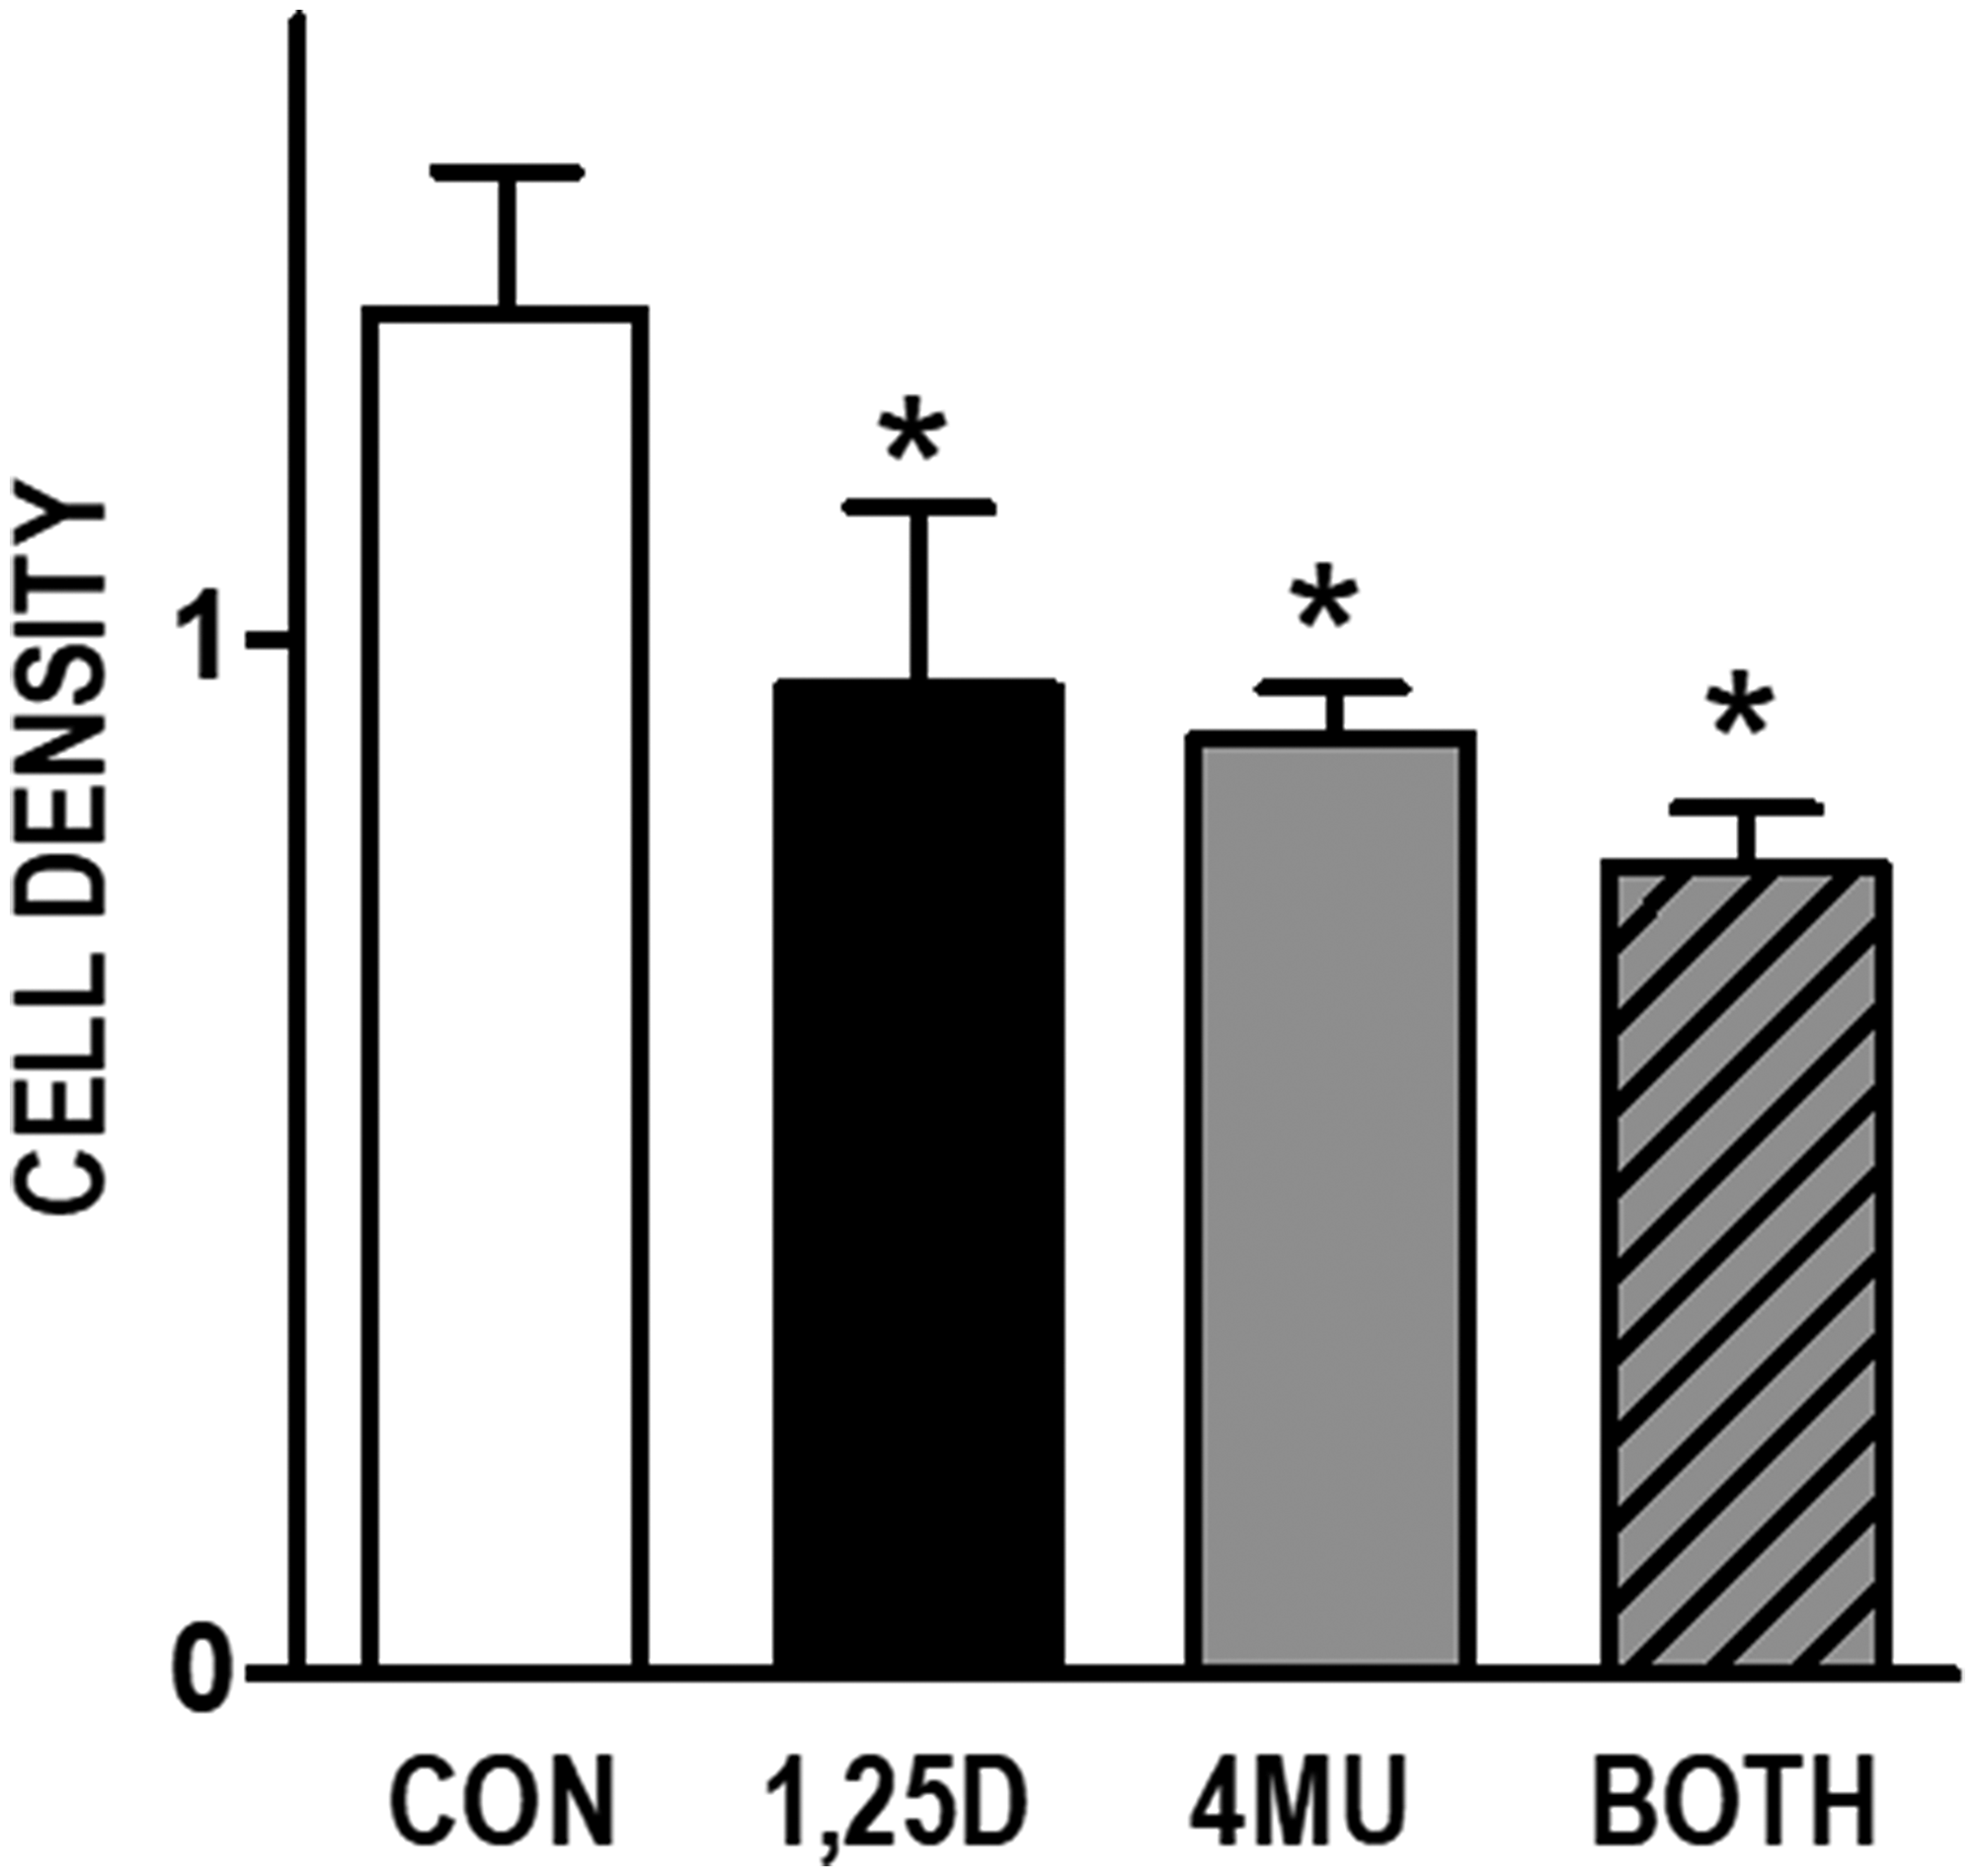 Effects of HA synthesis inhibitor 4MU and 1,25D3 on growth of WT145 cultures.